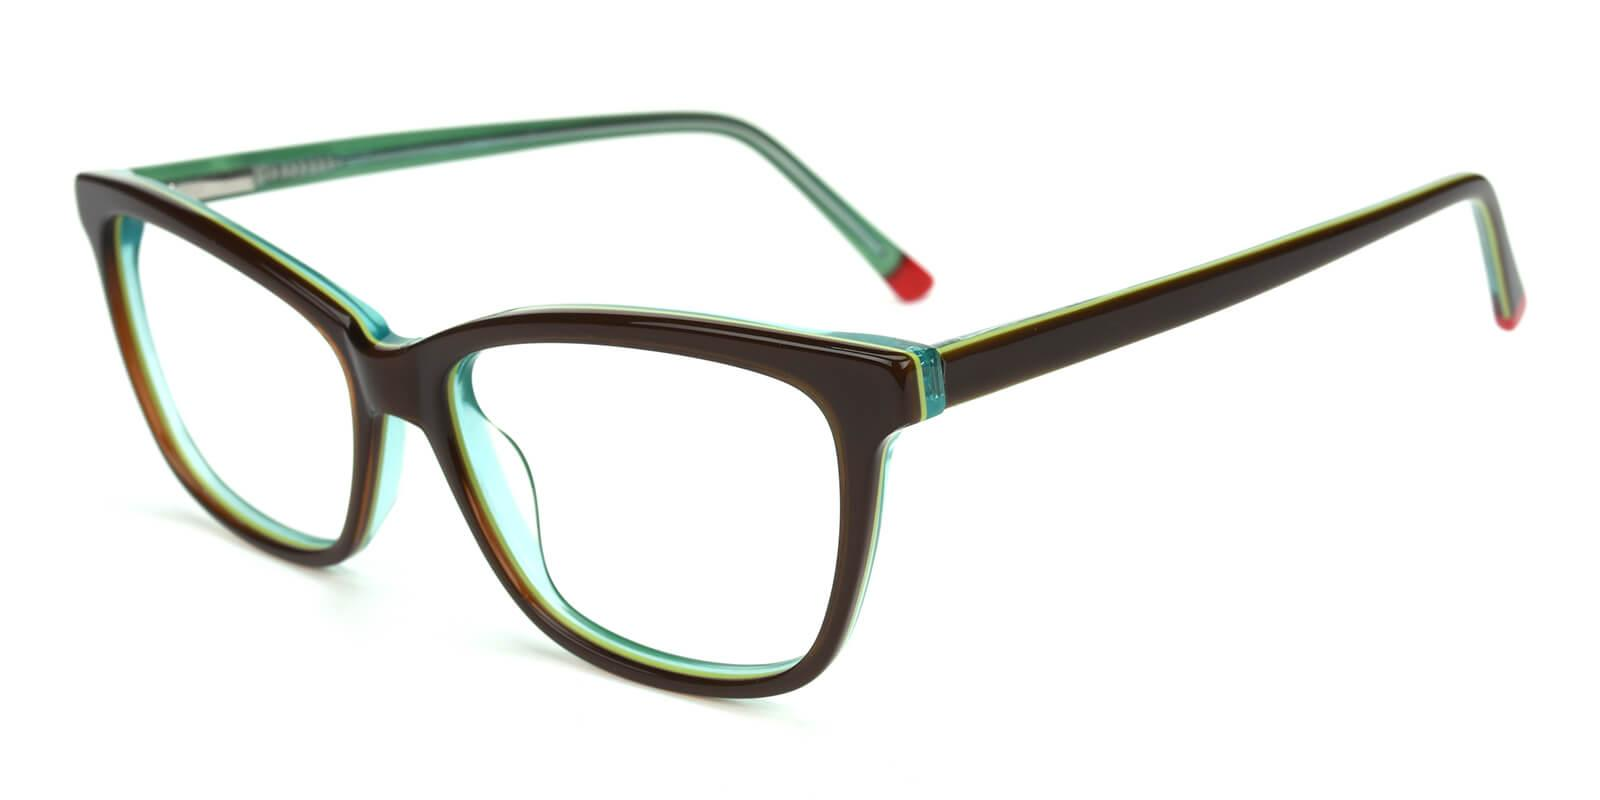 Clowdia-Green-Square / Cat-Acetate-Eyeglasses-detail